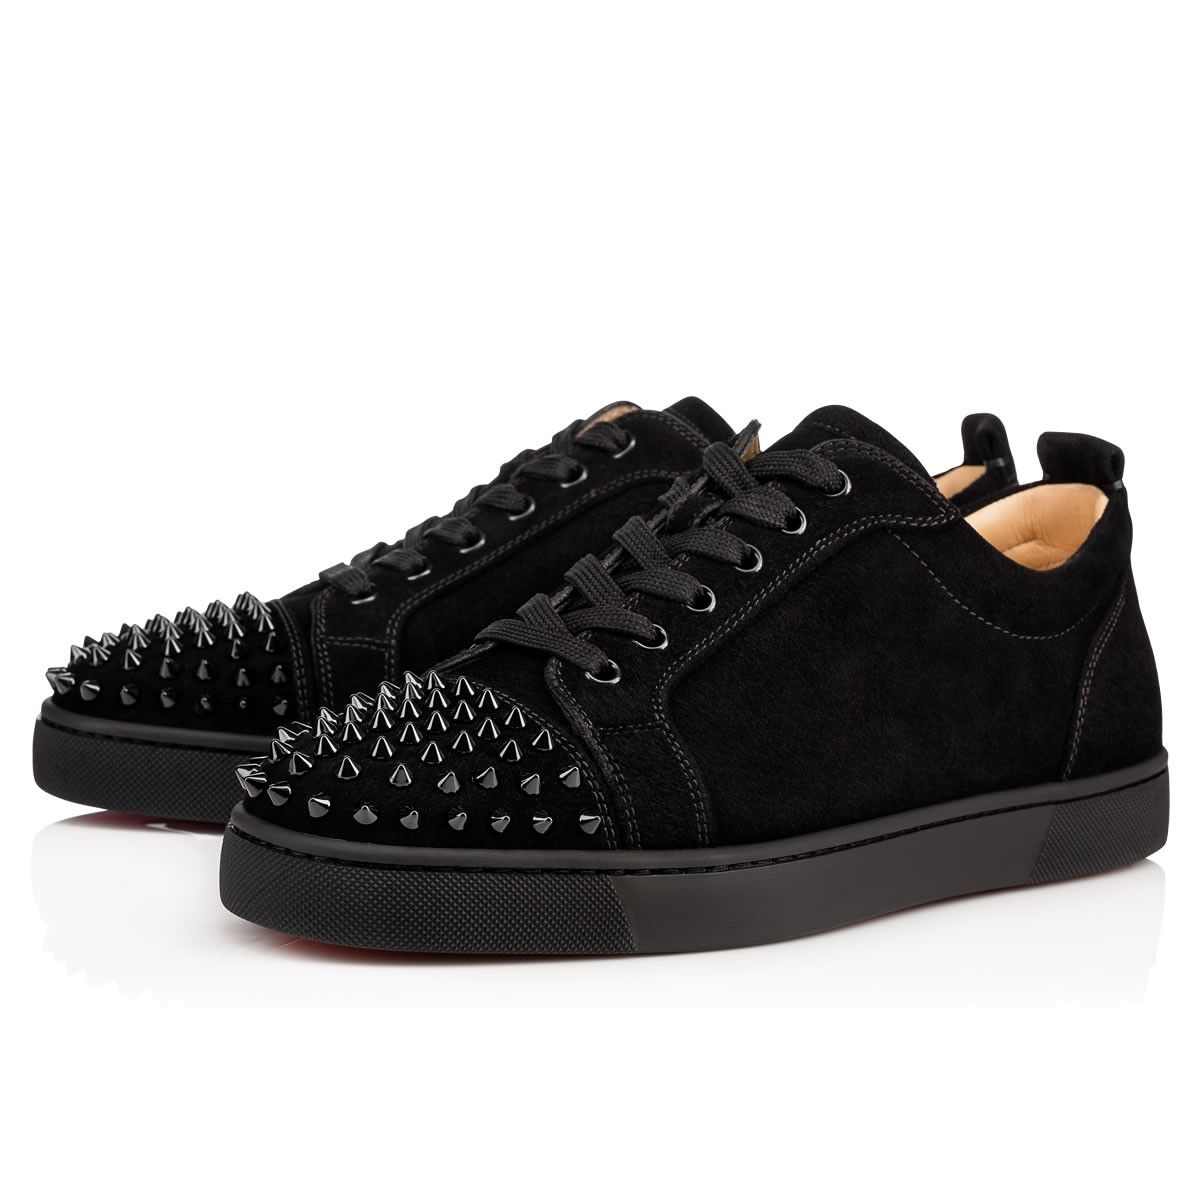 6c1c2c6ad4f Men Shoes - Louis Junior Spikes Veau Velours - Christian Louboutin